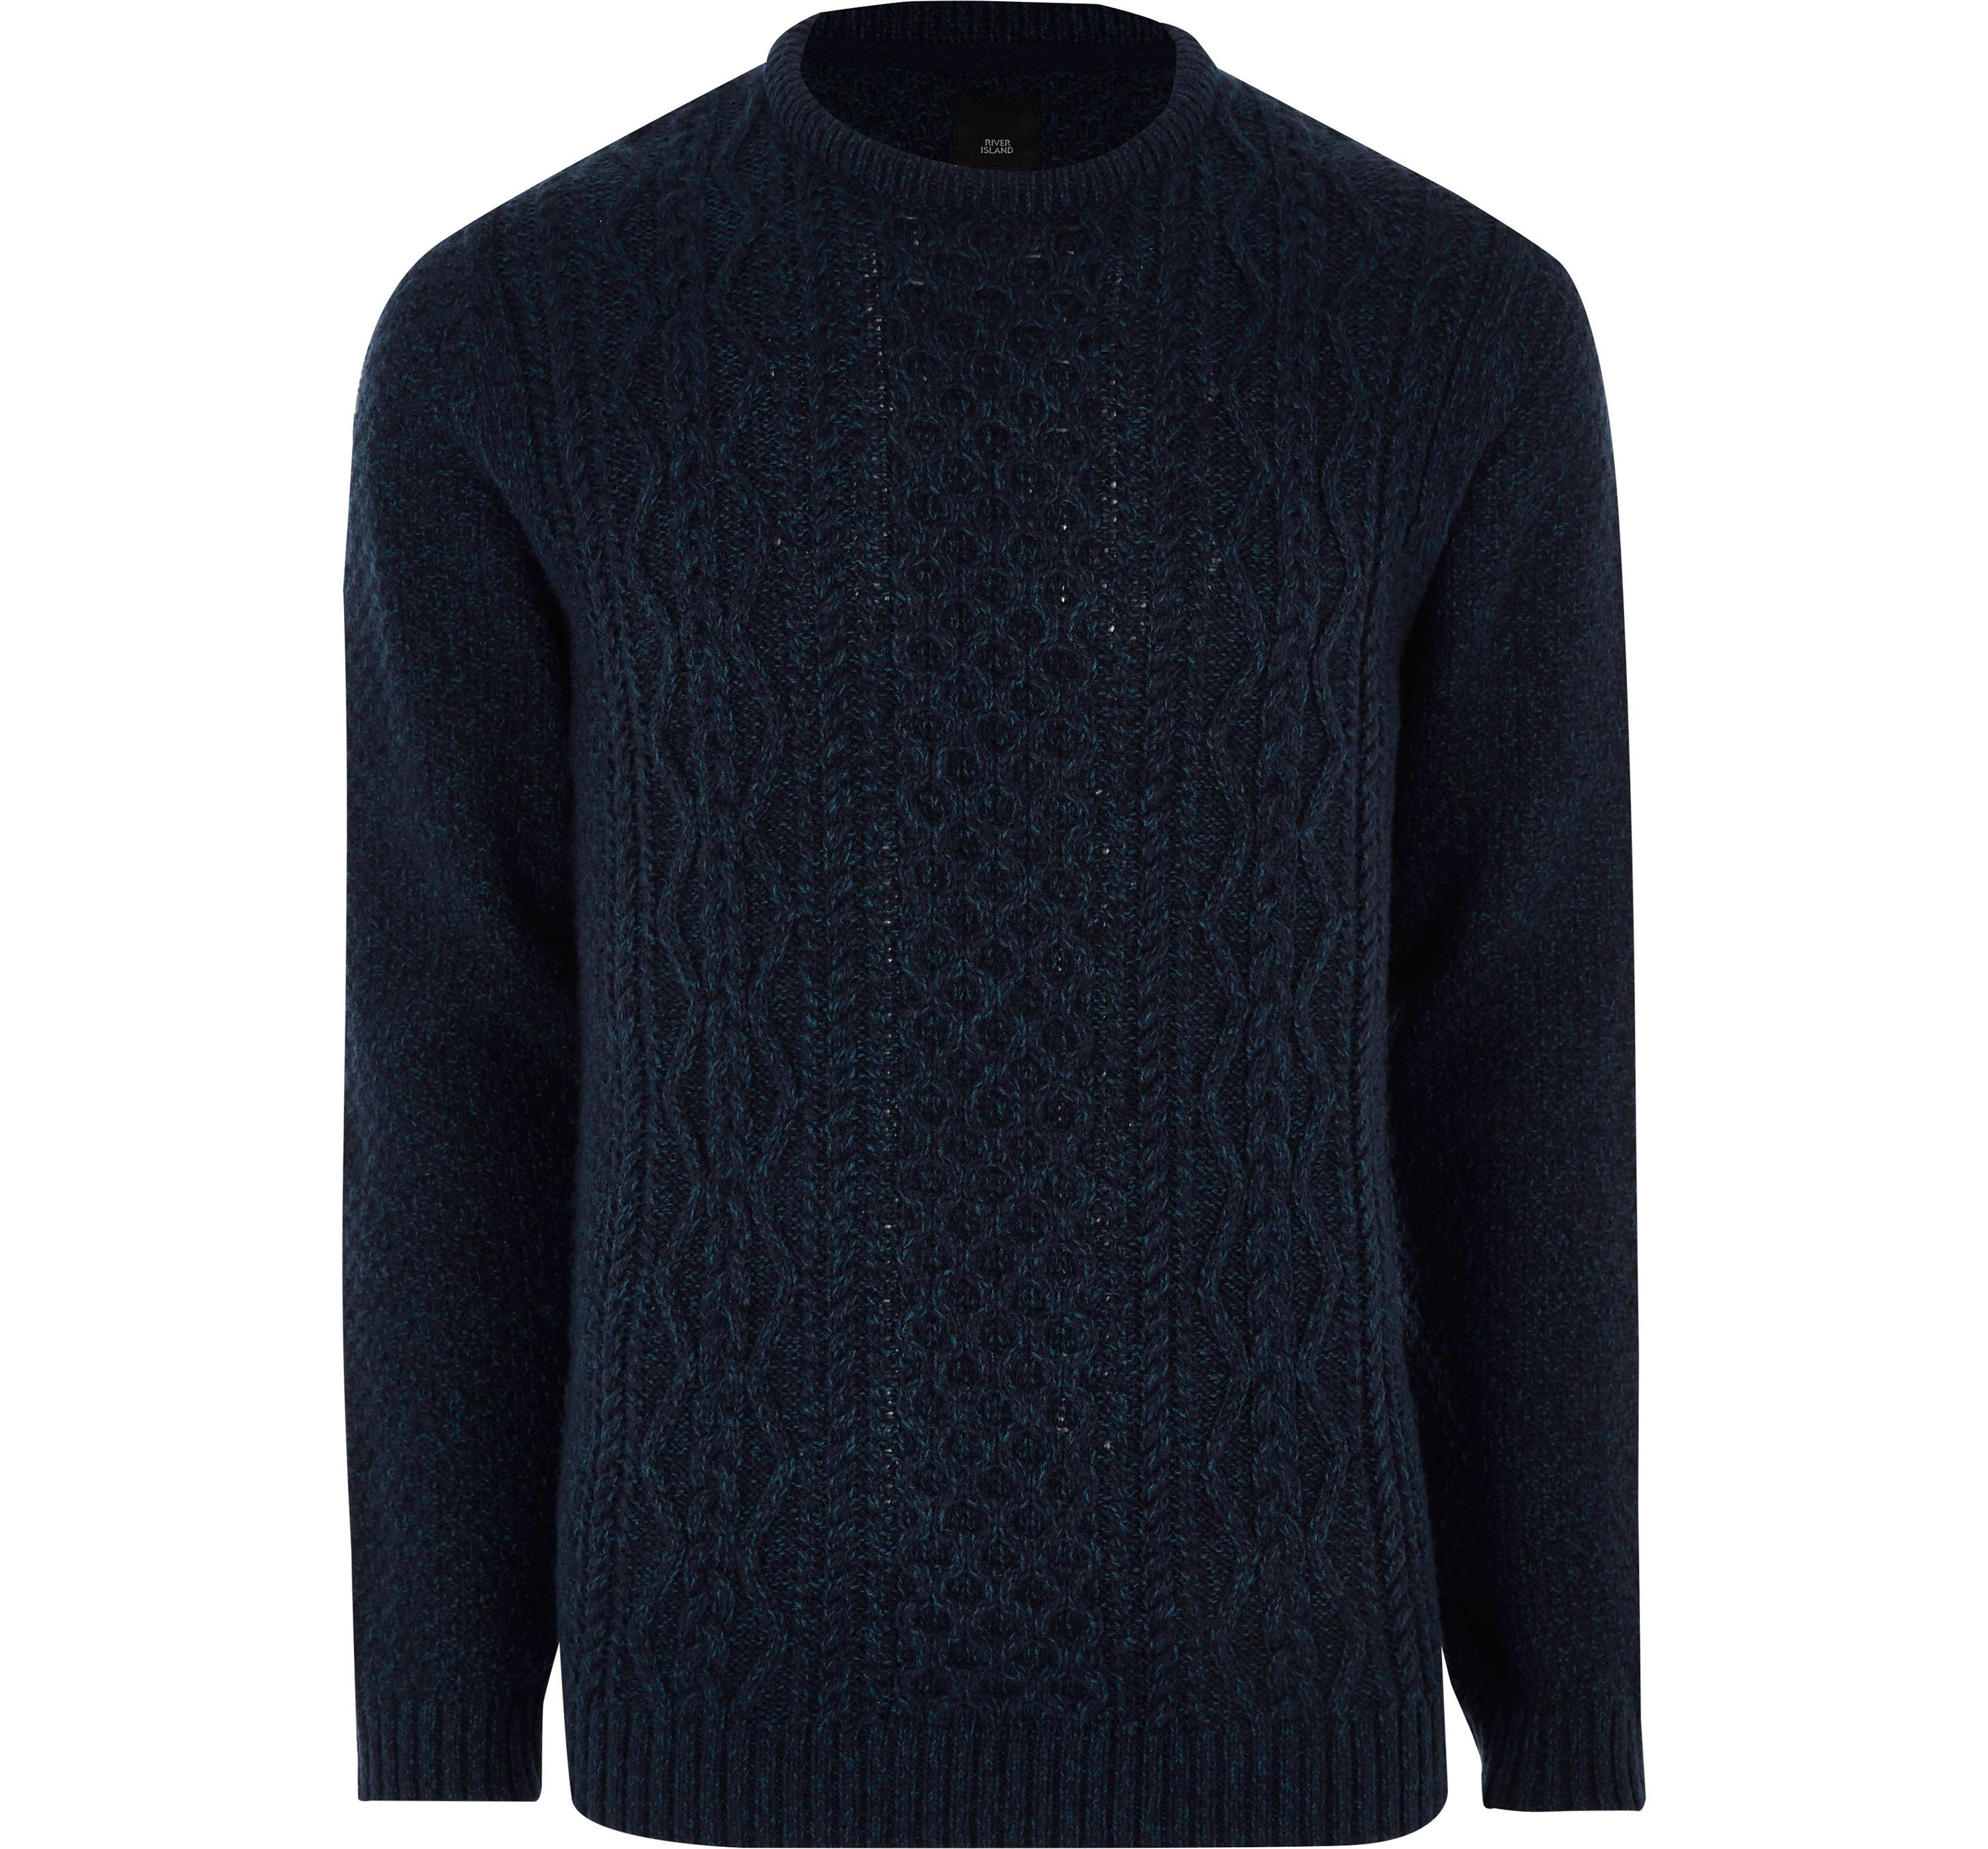 River Island Mens Navy cable knit jumper